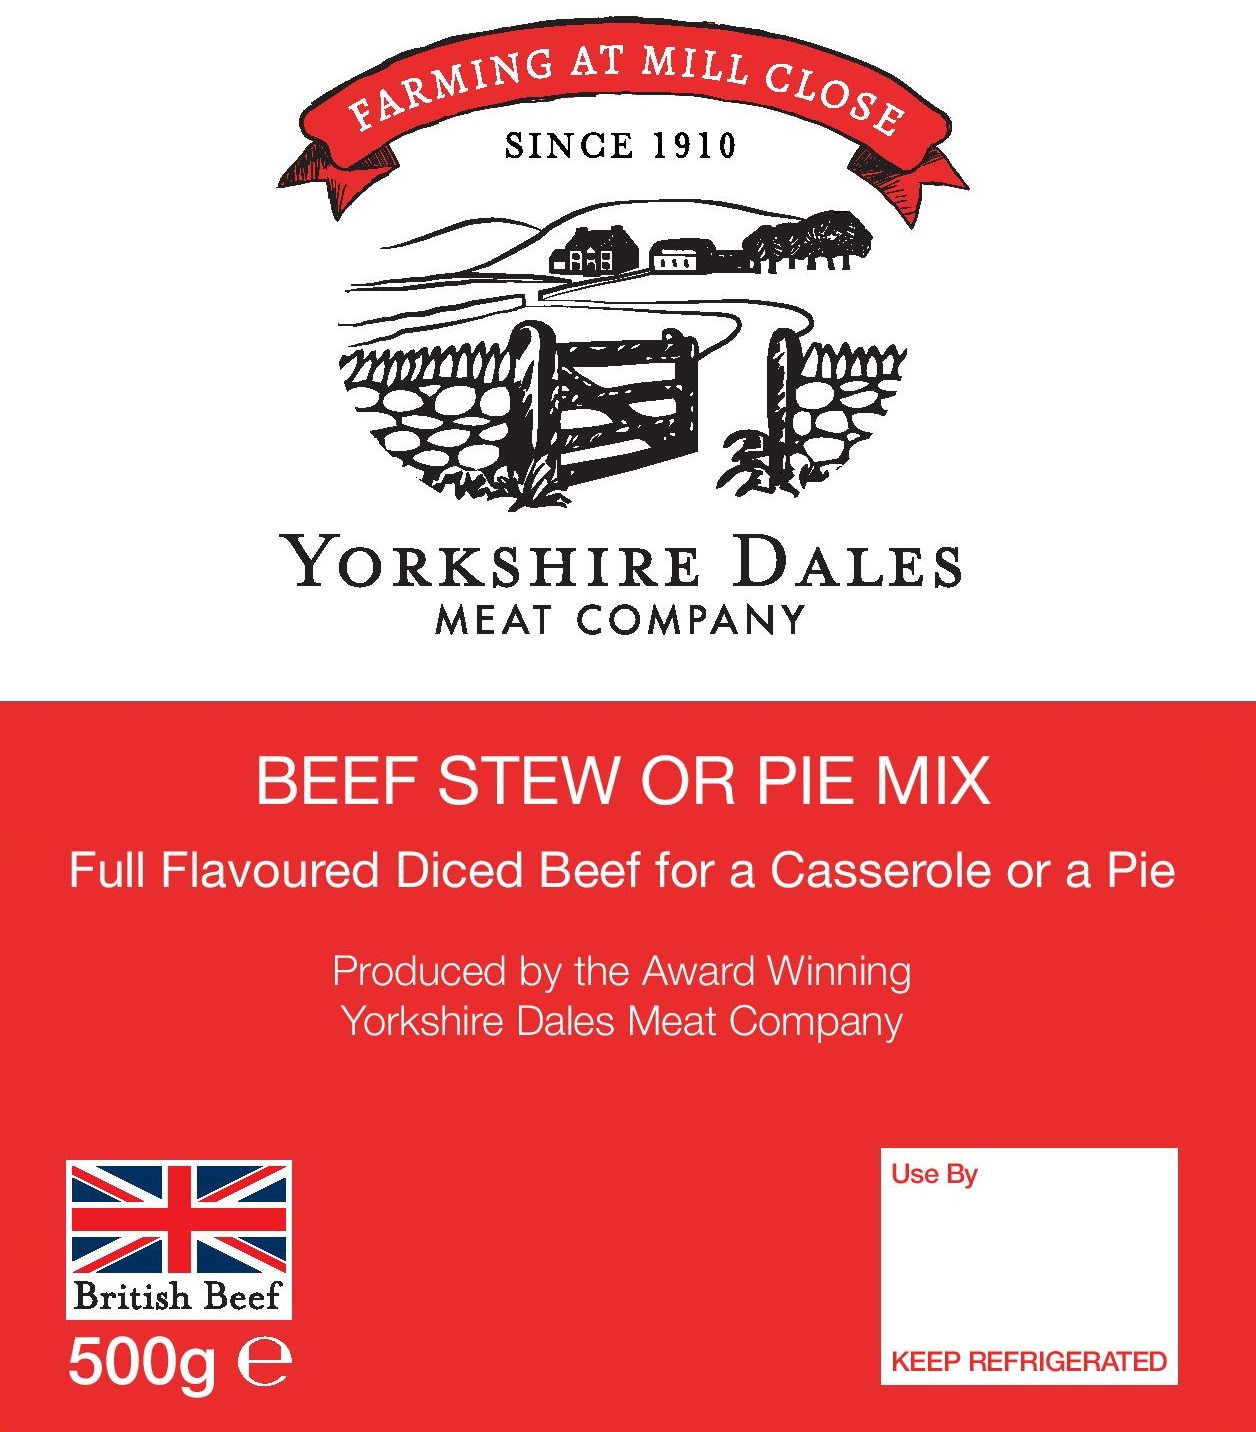 Beef Stew or Pie Mix